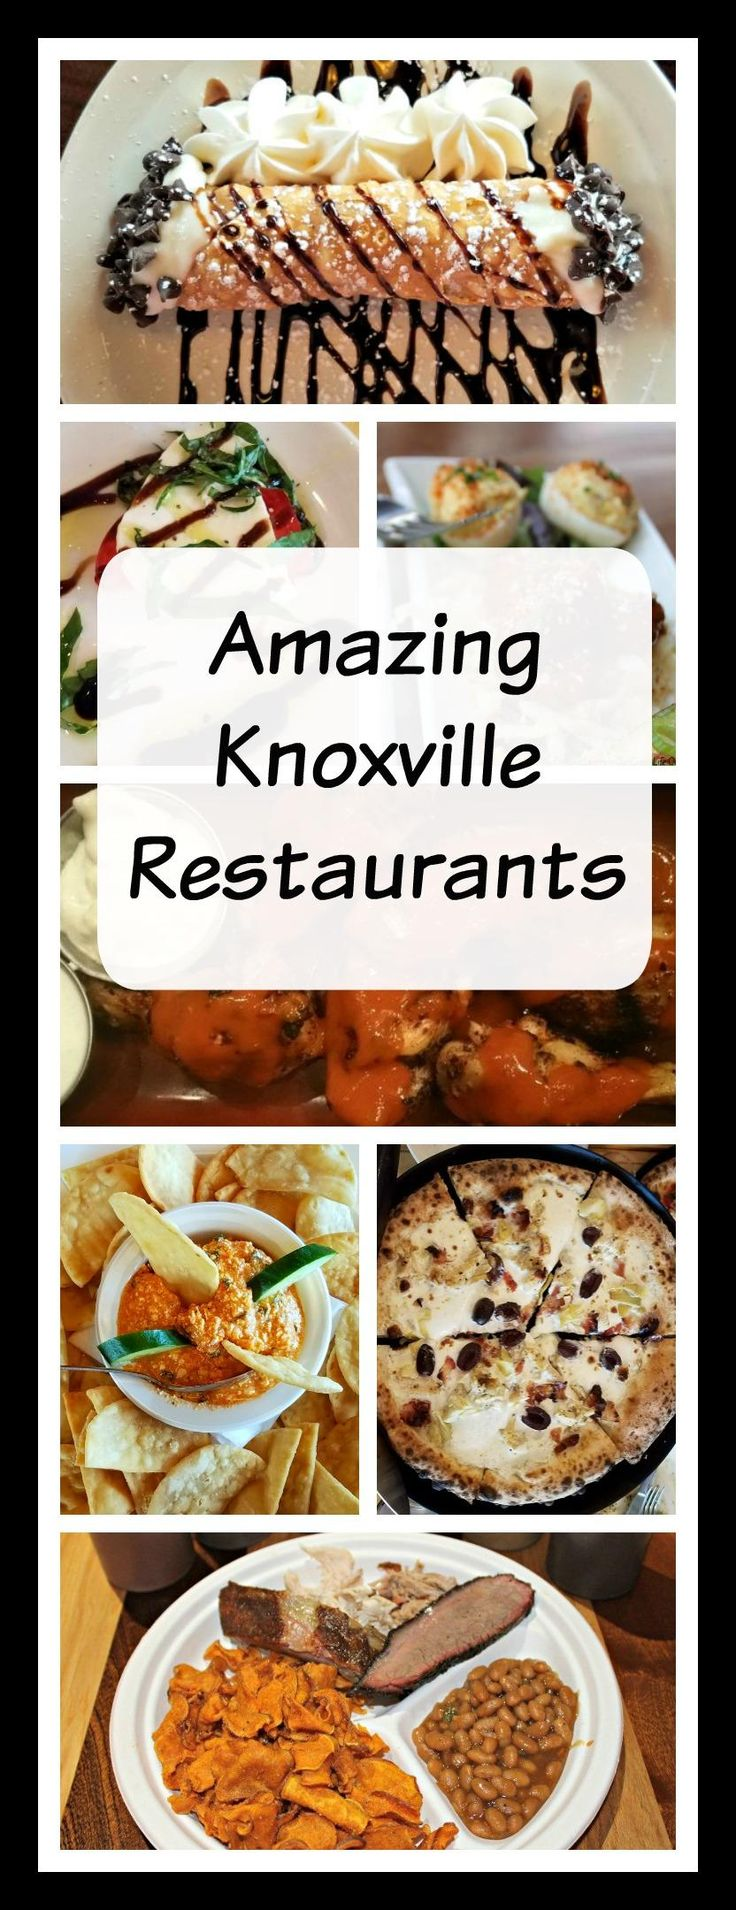 Delicious food awaits you at these delicious Top Knoxville Restaurants.